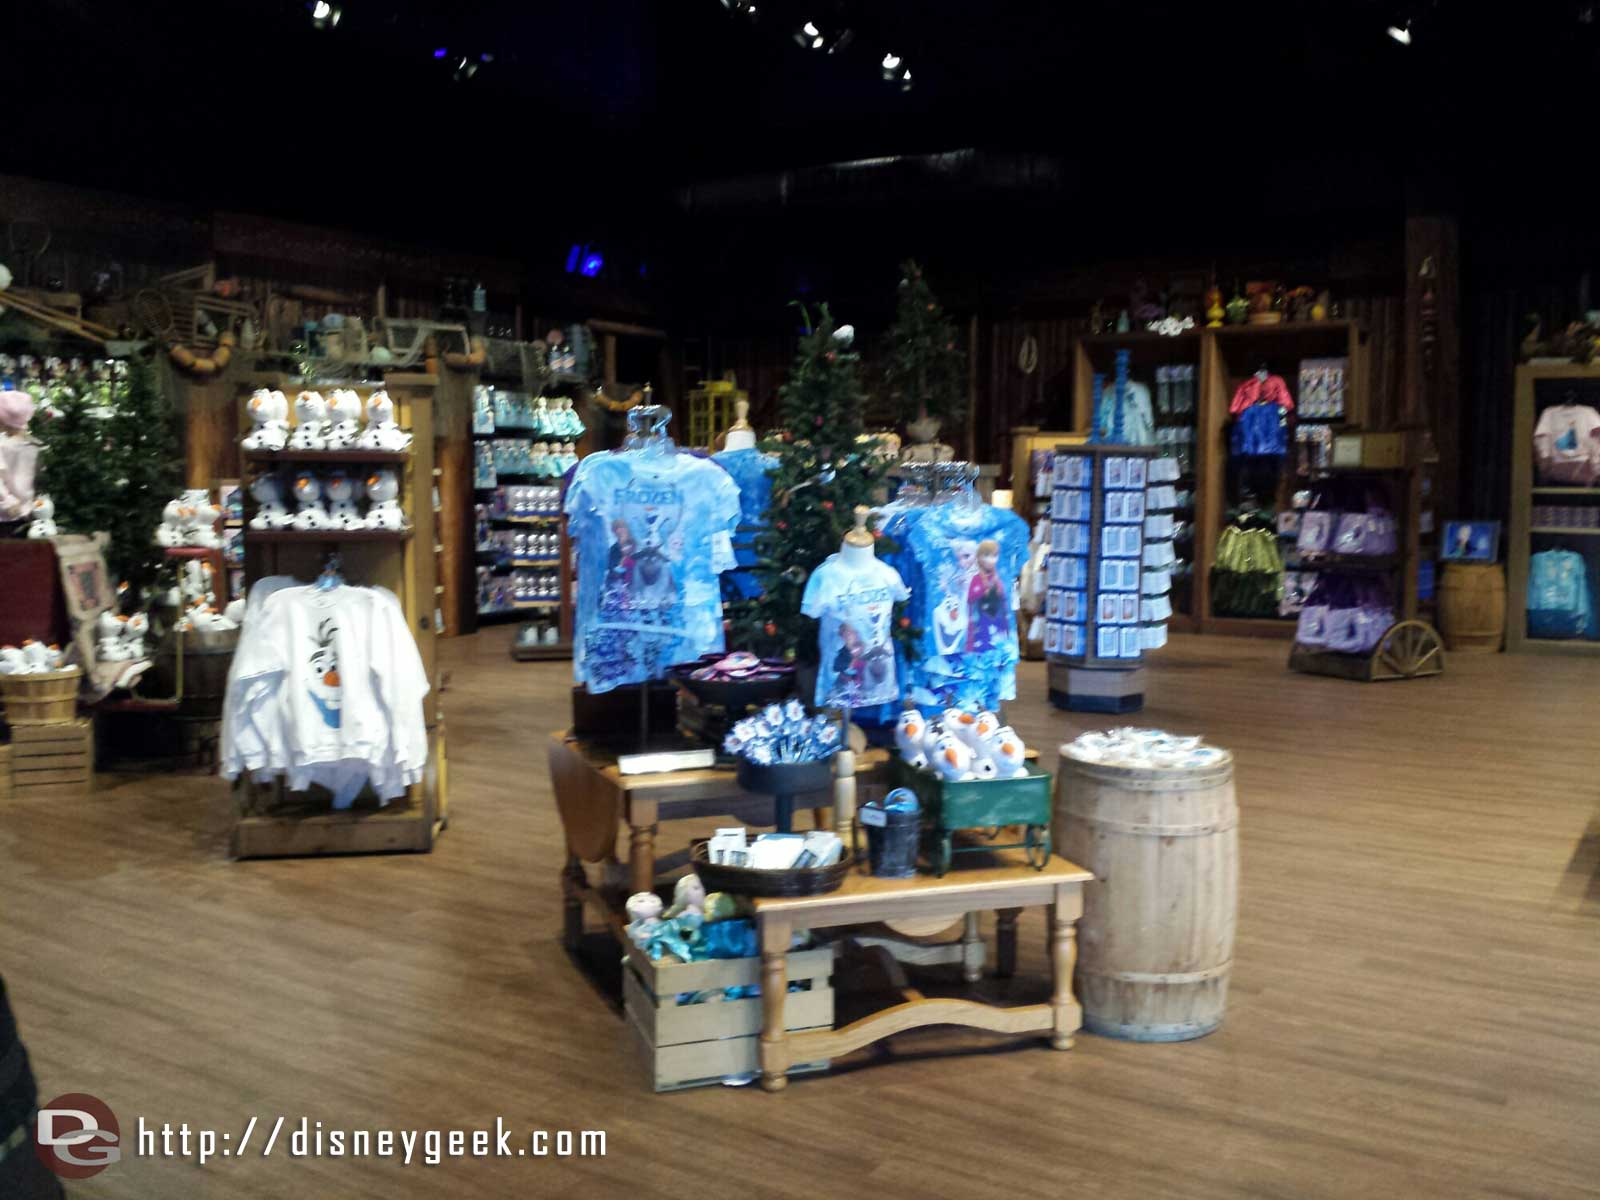 No one in the Wandering Oaken's Trading Post – Disney's